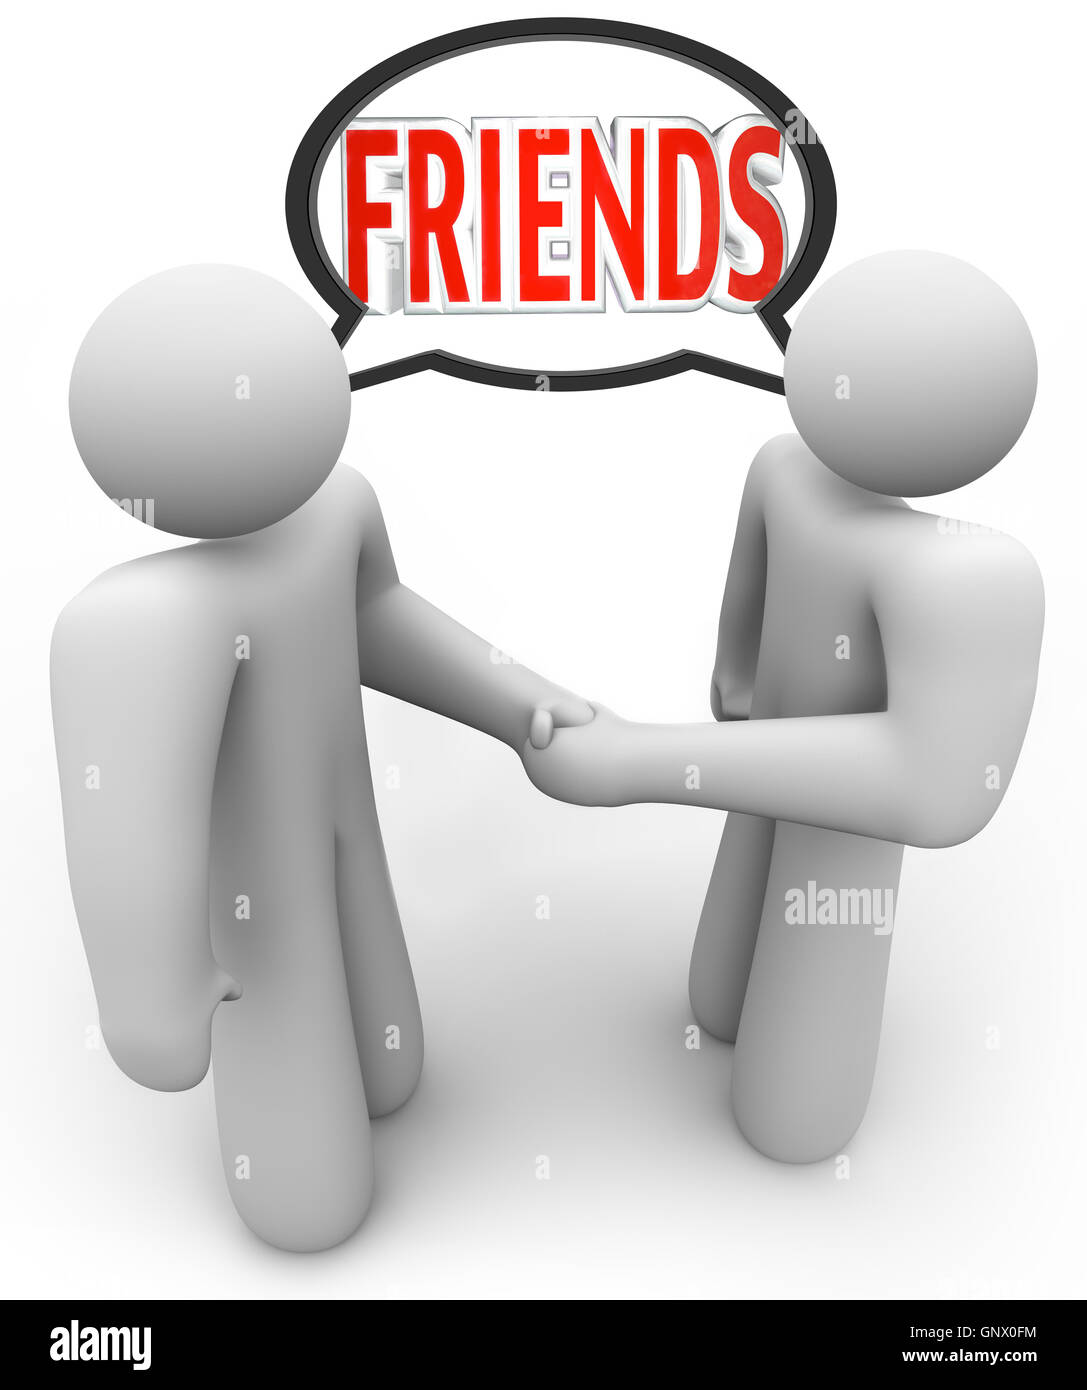 Friends Two People Shaking Hands Friendly Meeting Stock Photo